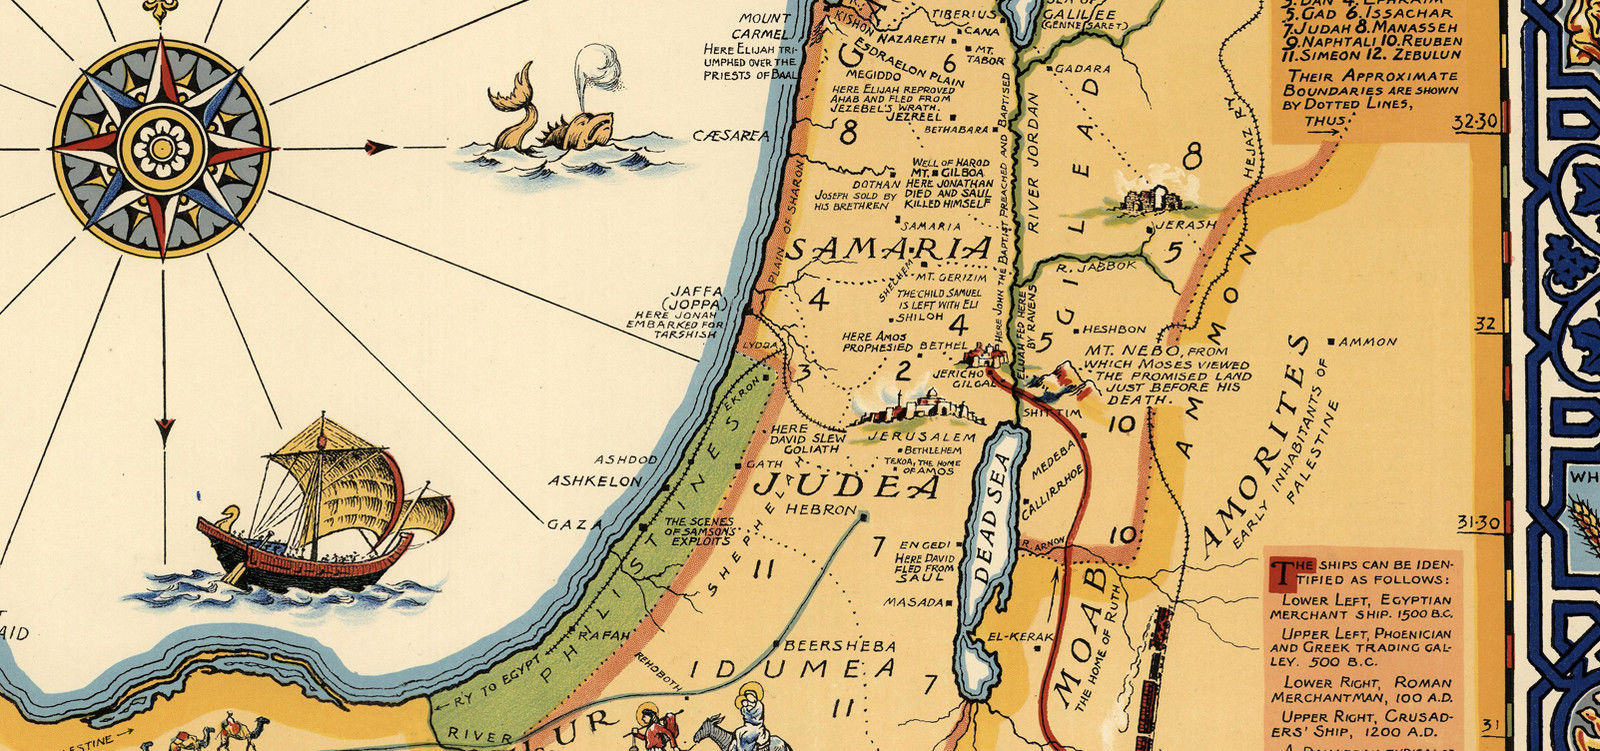 1928 Pictorial Map Holy Land Palestine and similar items